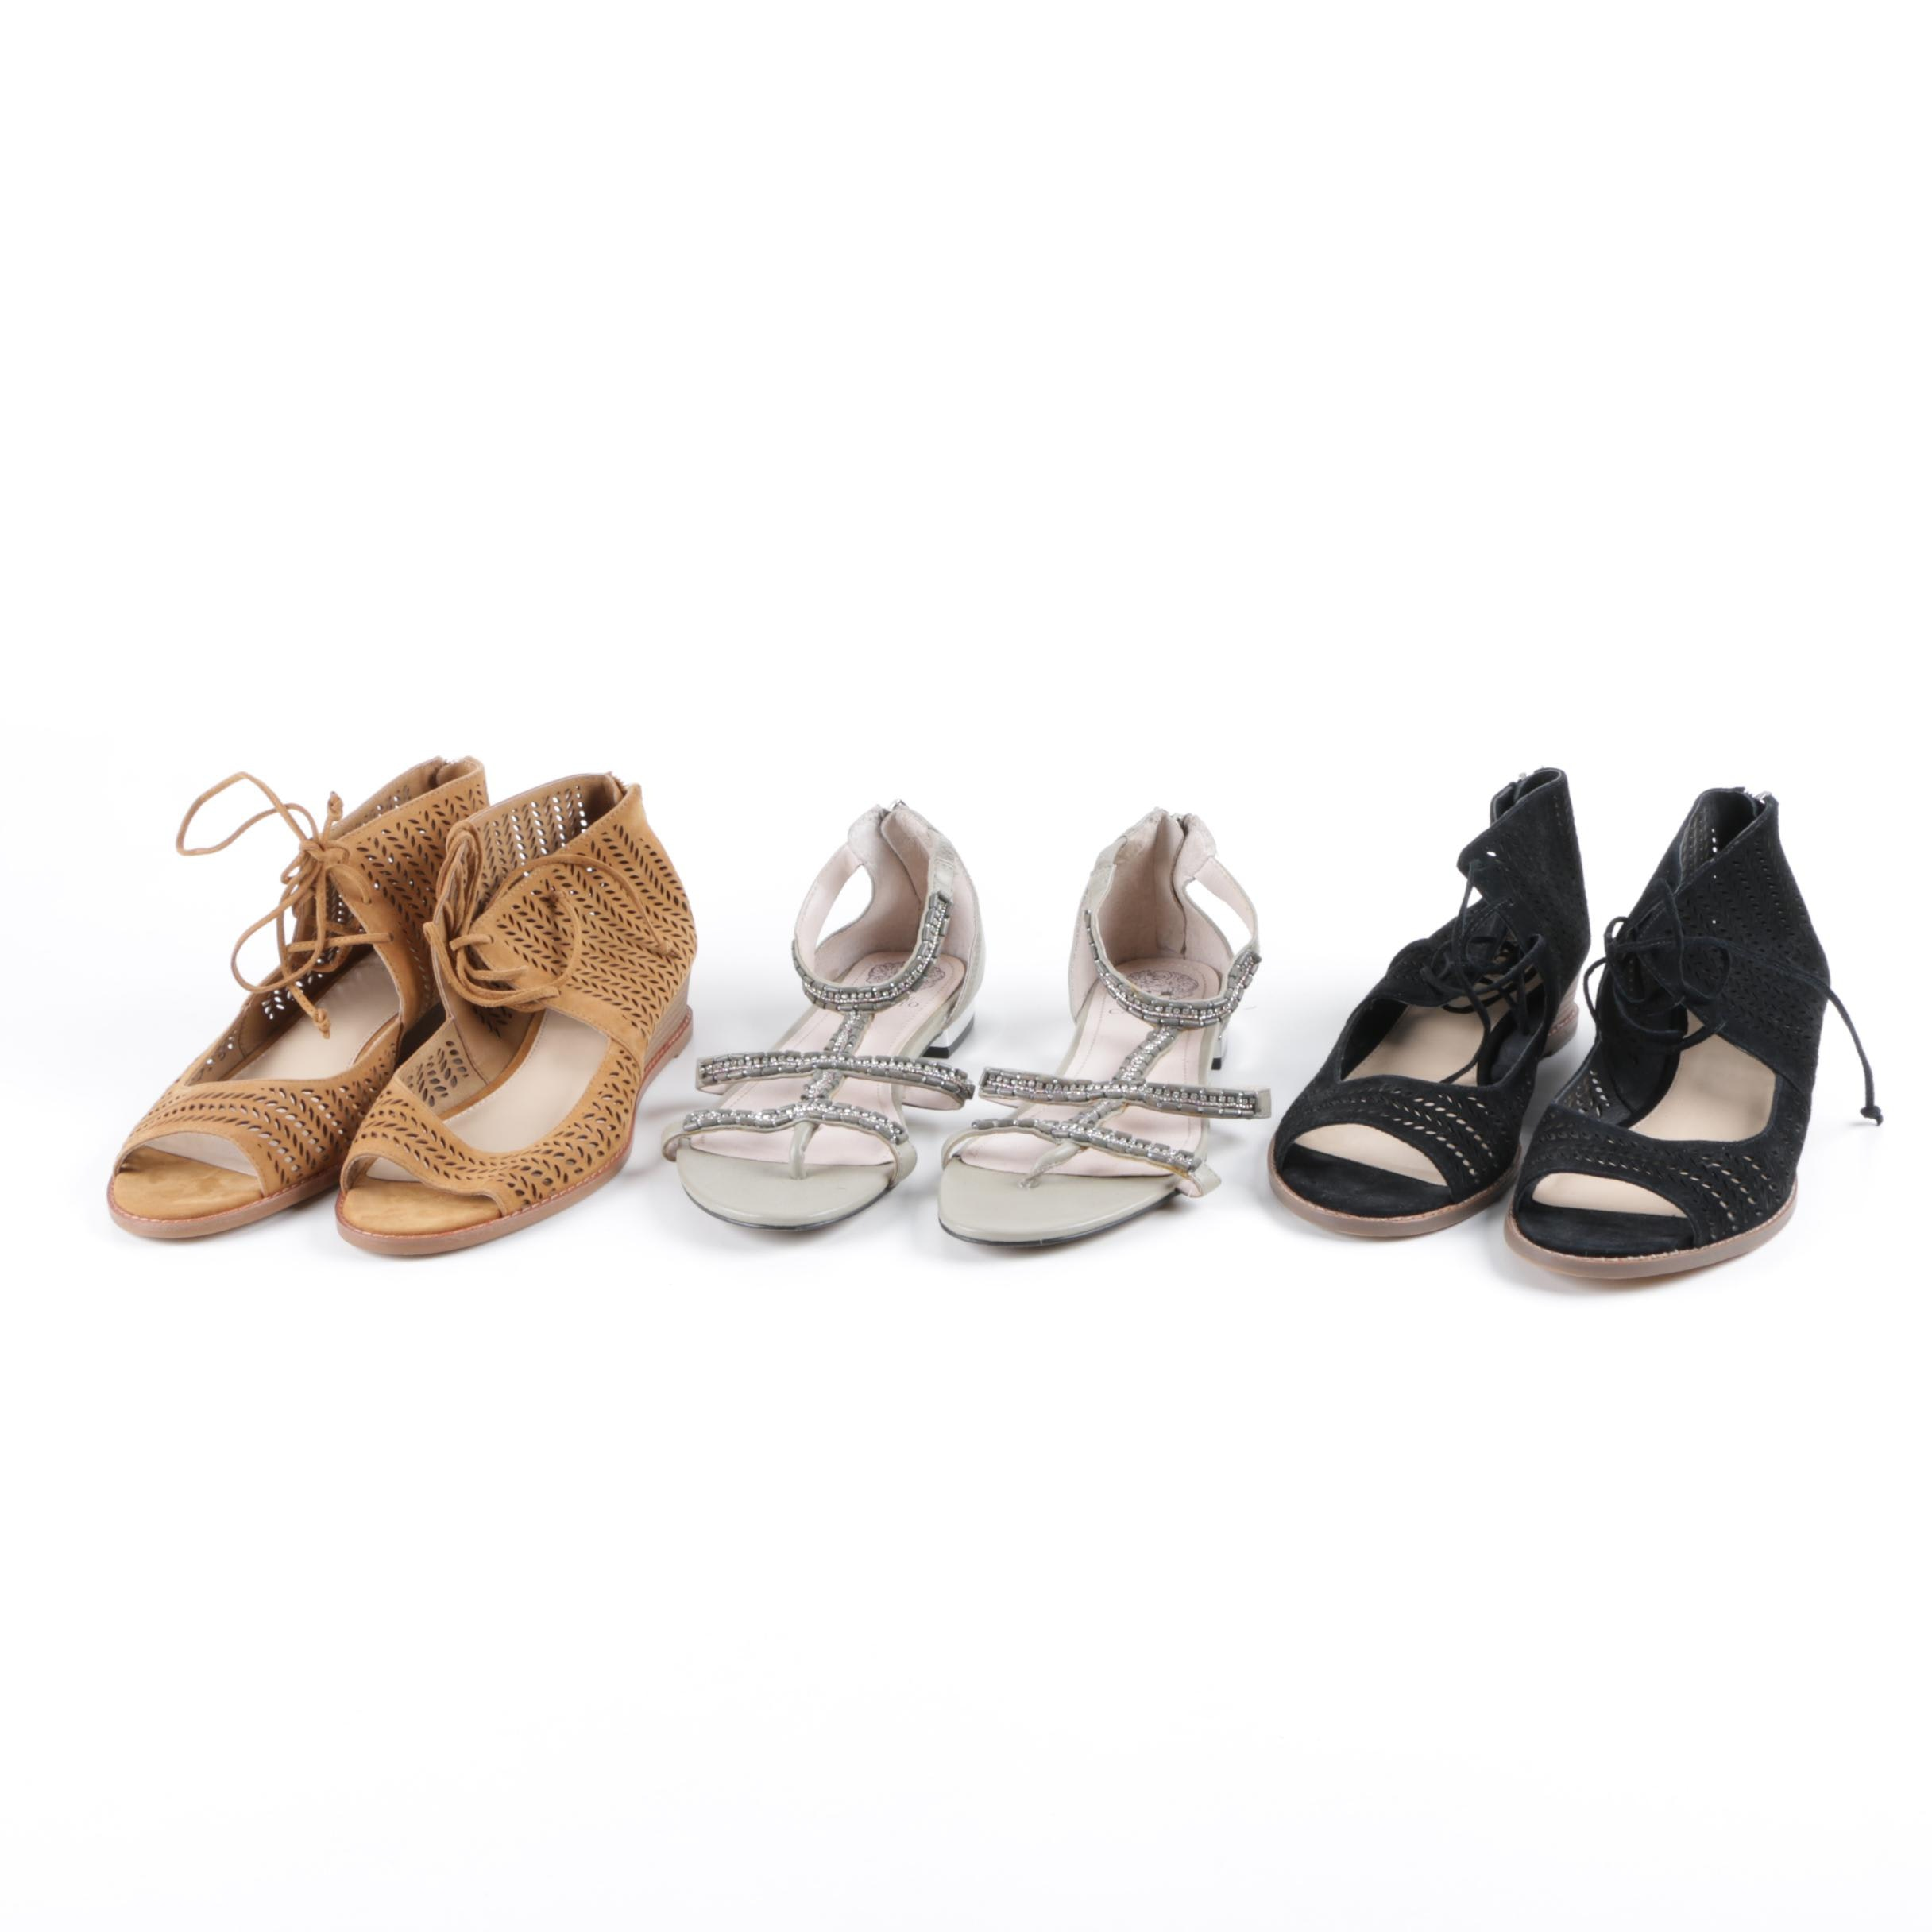 Vince Camuto Leather and Faux Leather Sandals